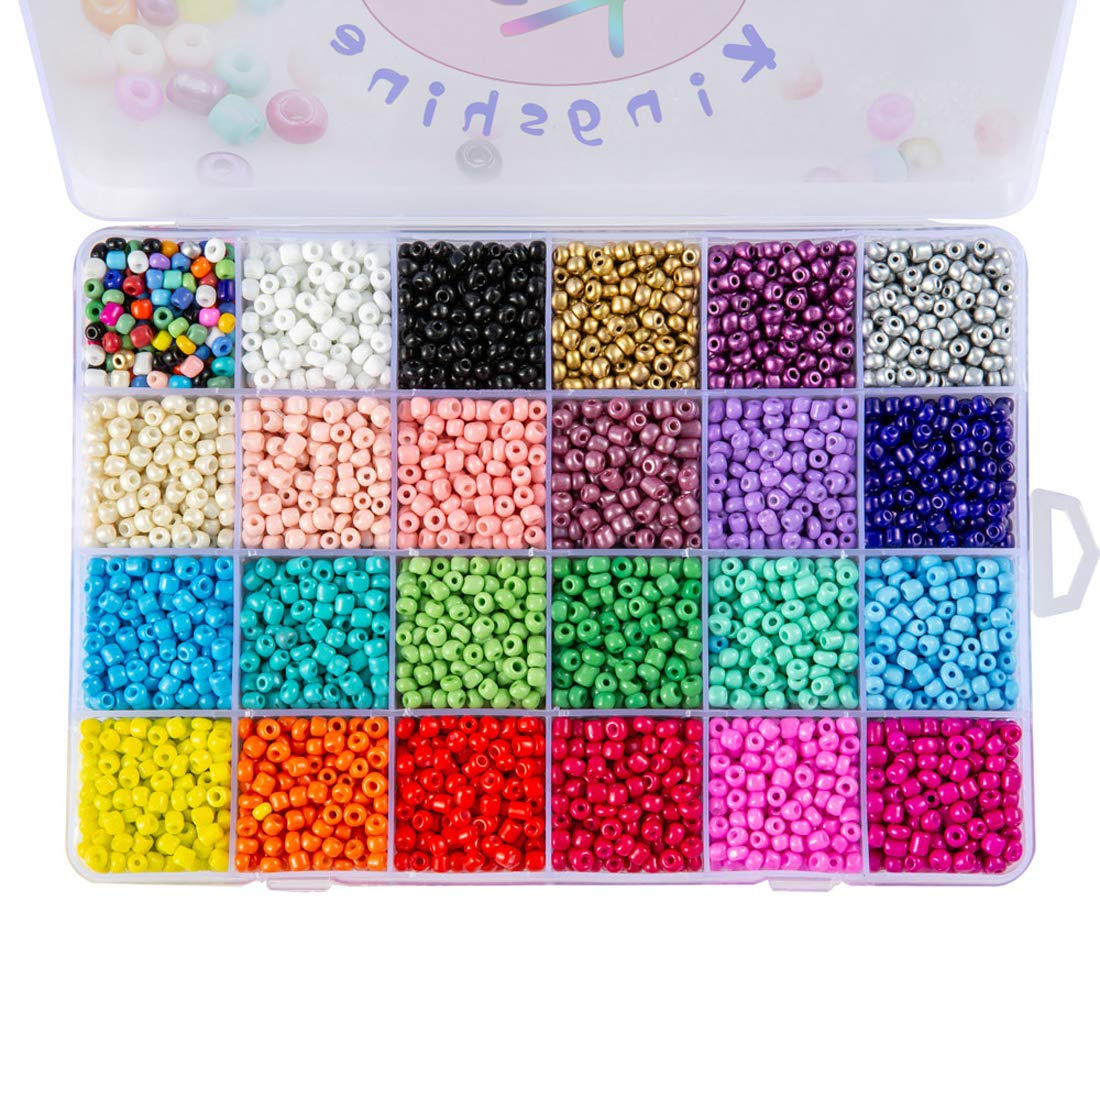 Multicolor Beading Glass Seed Beads - Tube Beads 24 Colors 4mm Pony Bead Round Spacer Mini Beads, Approx 7200pcs with Container Box for Jewelry Making by KINGSHINE